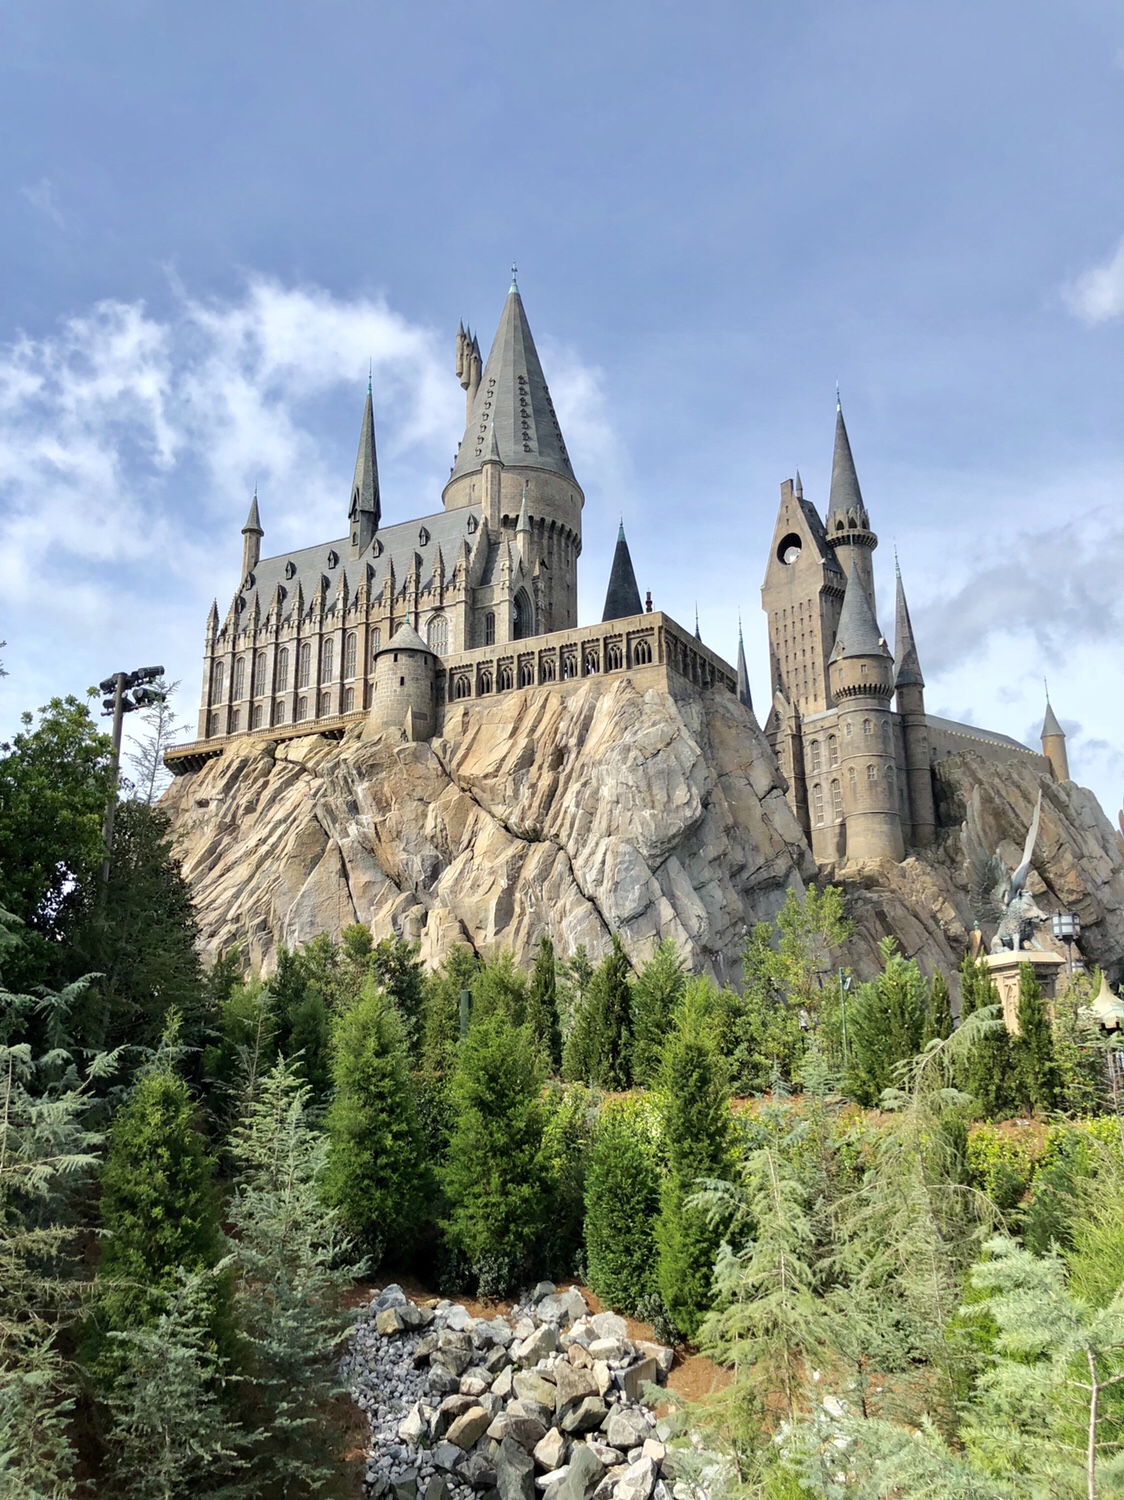 Harry Potter and the Forbidden Journey ride inside Hogwart's #hogwarts #harrypotter #harrypotterride #wizardingworldofharrypotter #universalorlando